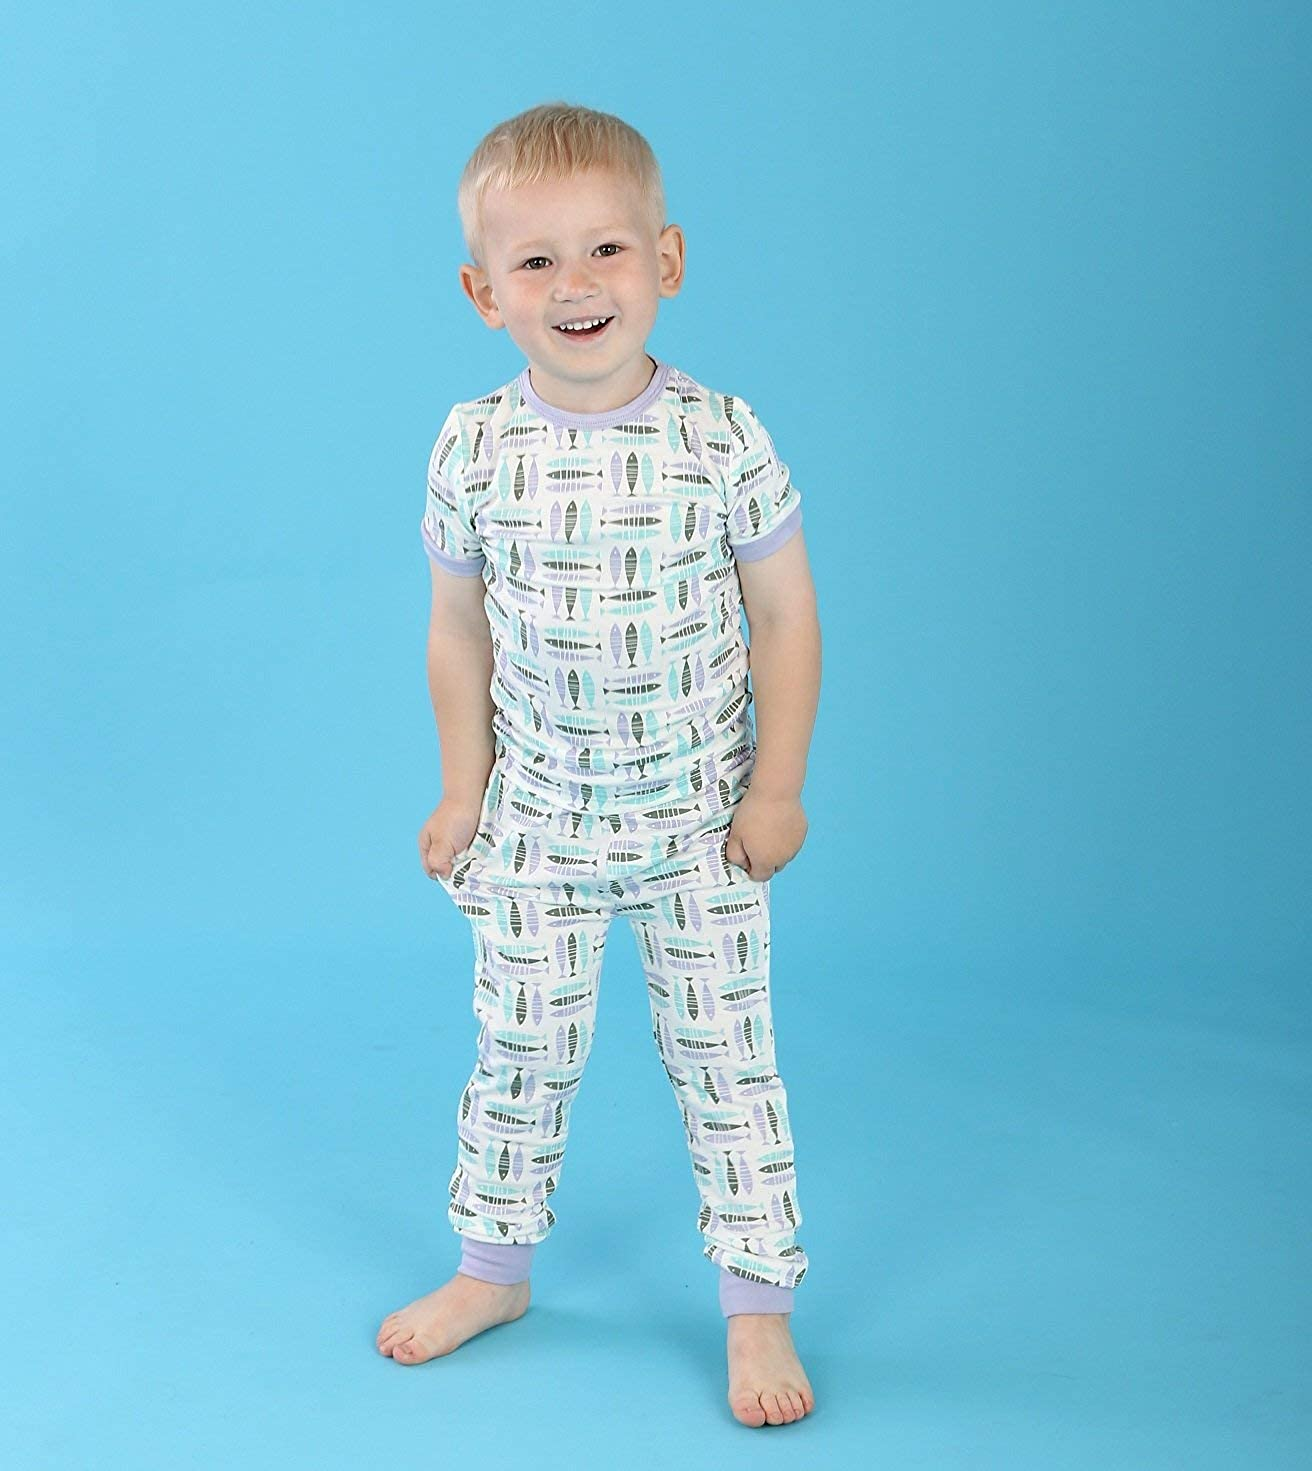 d6f8cbf8f Amazon.com  Silkberry Baby Bamboo Unisex-Baby Pajama Set  Clothing